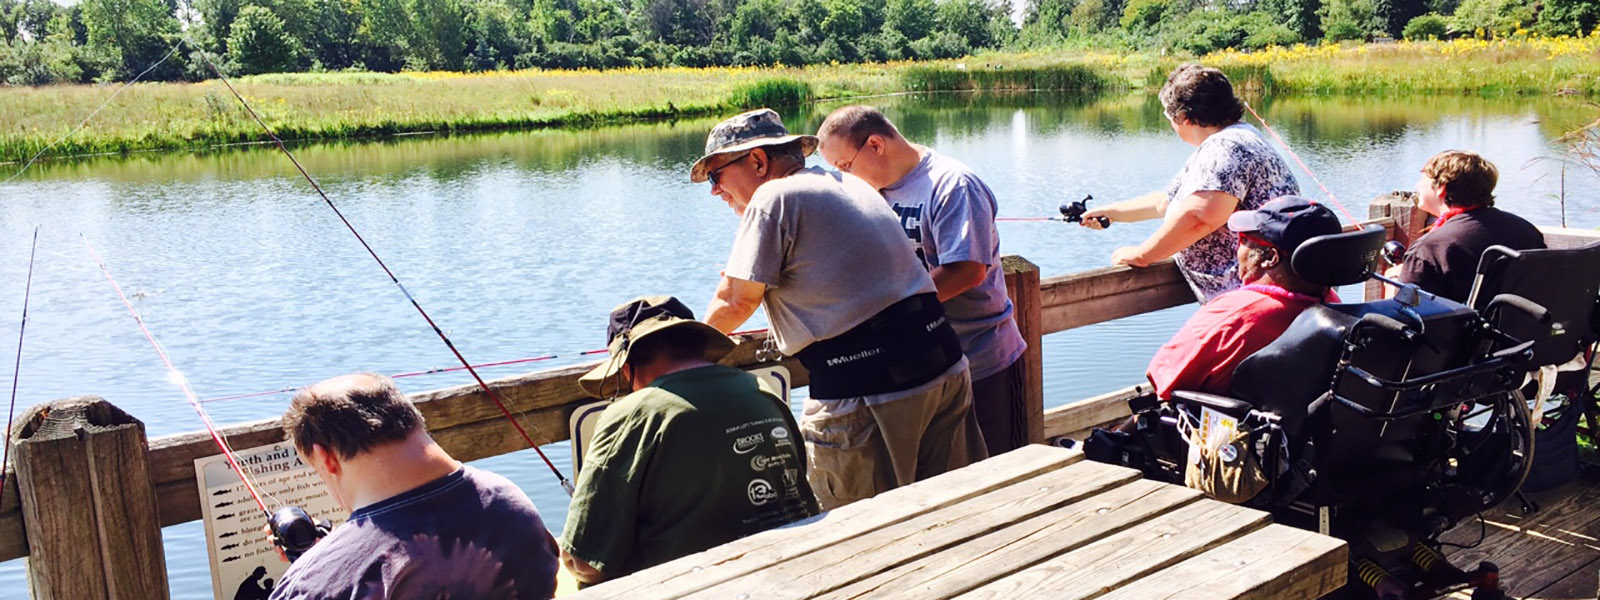 Rangers fishing program Wood County Park District